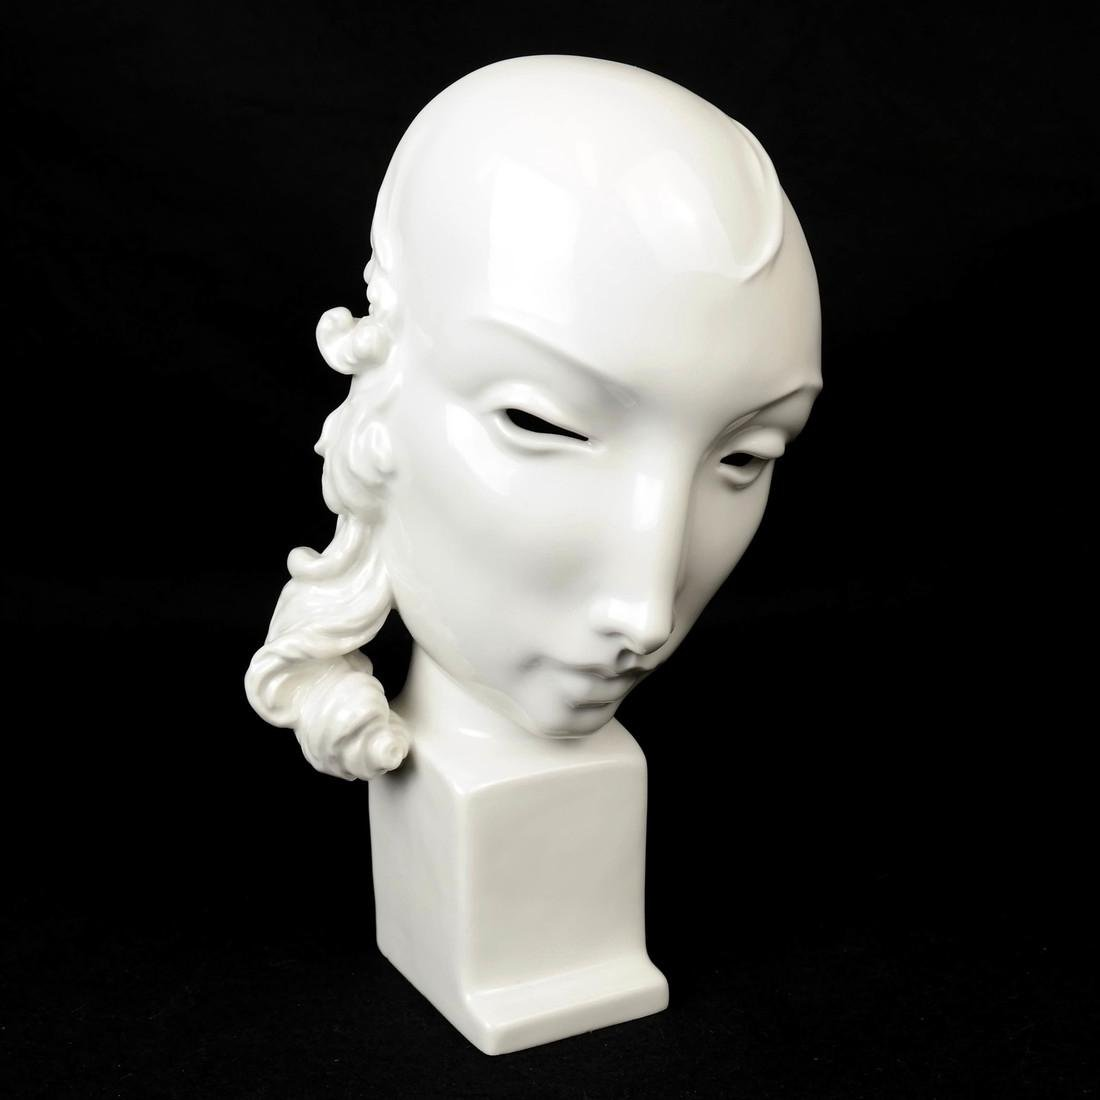 KPM Porcelain Female Face Sculpture